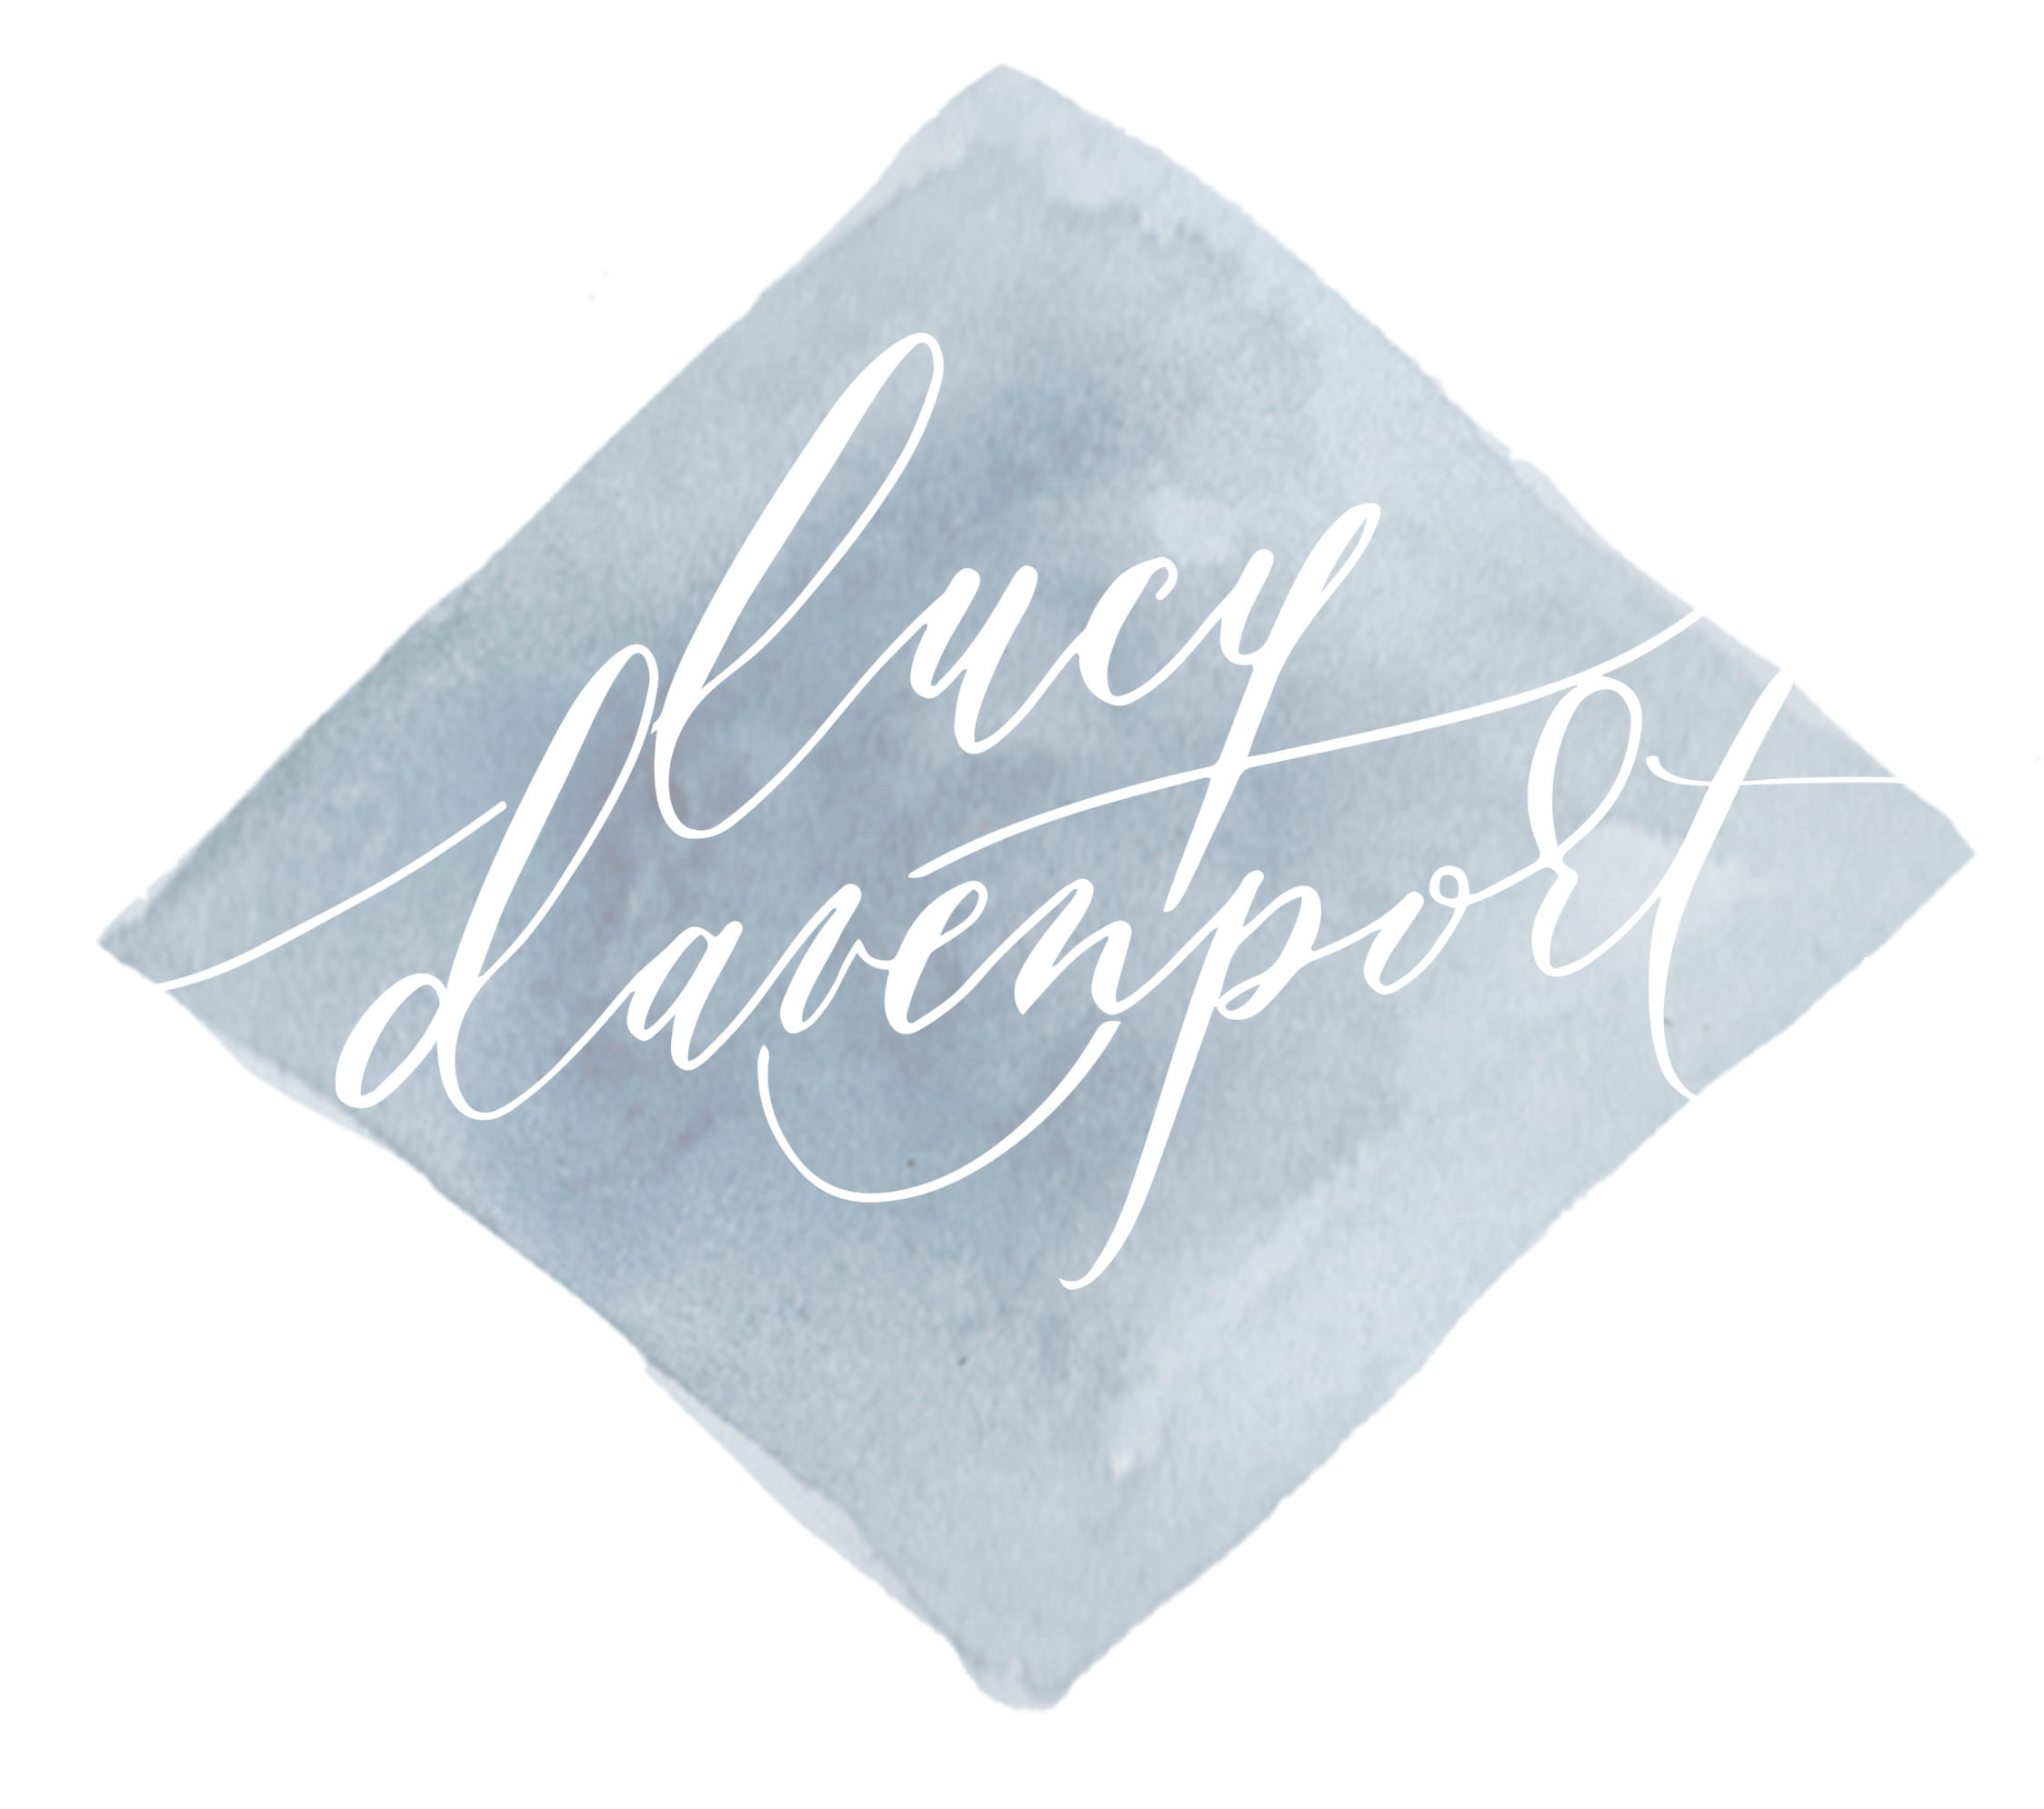 Lamplighter London design for Lucy Davenport